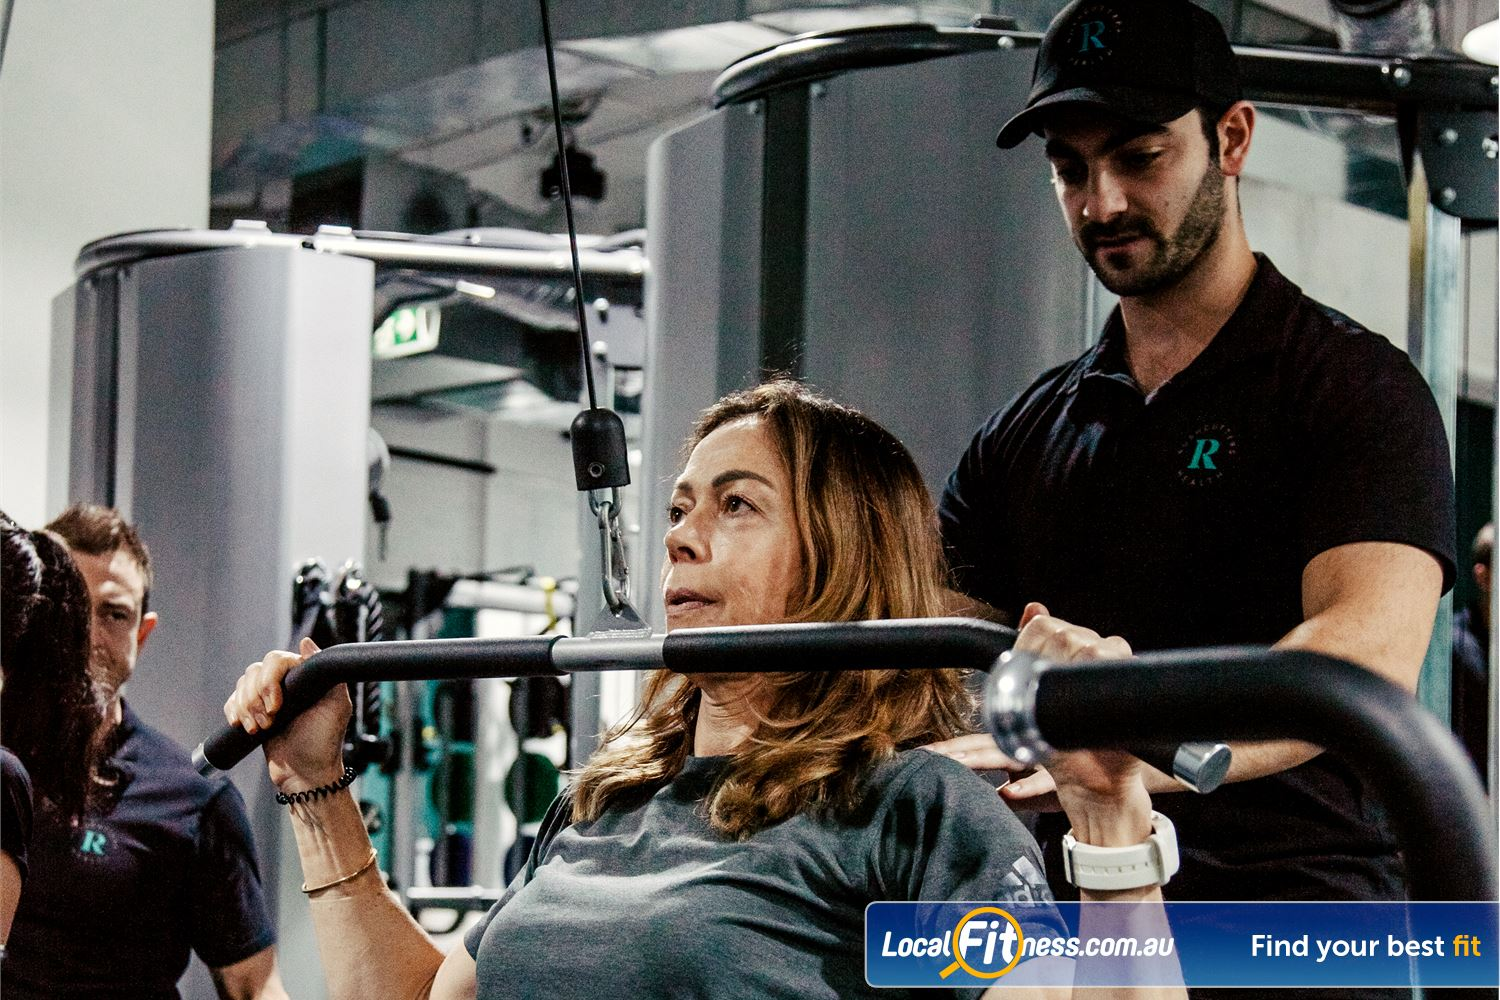 Rushcutters Health Rushcutters Bay Get access to our weekly personal training programs.